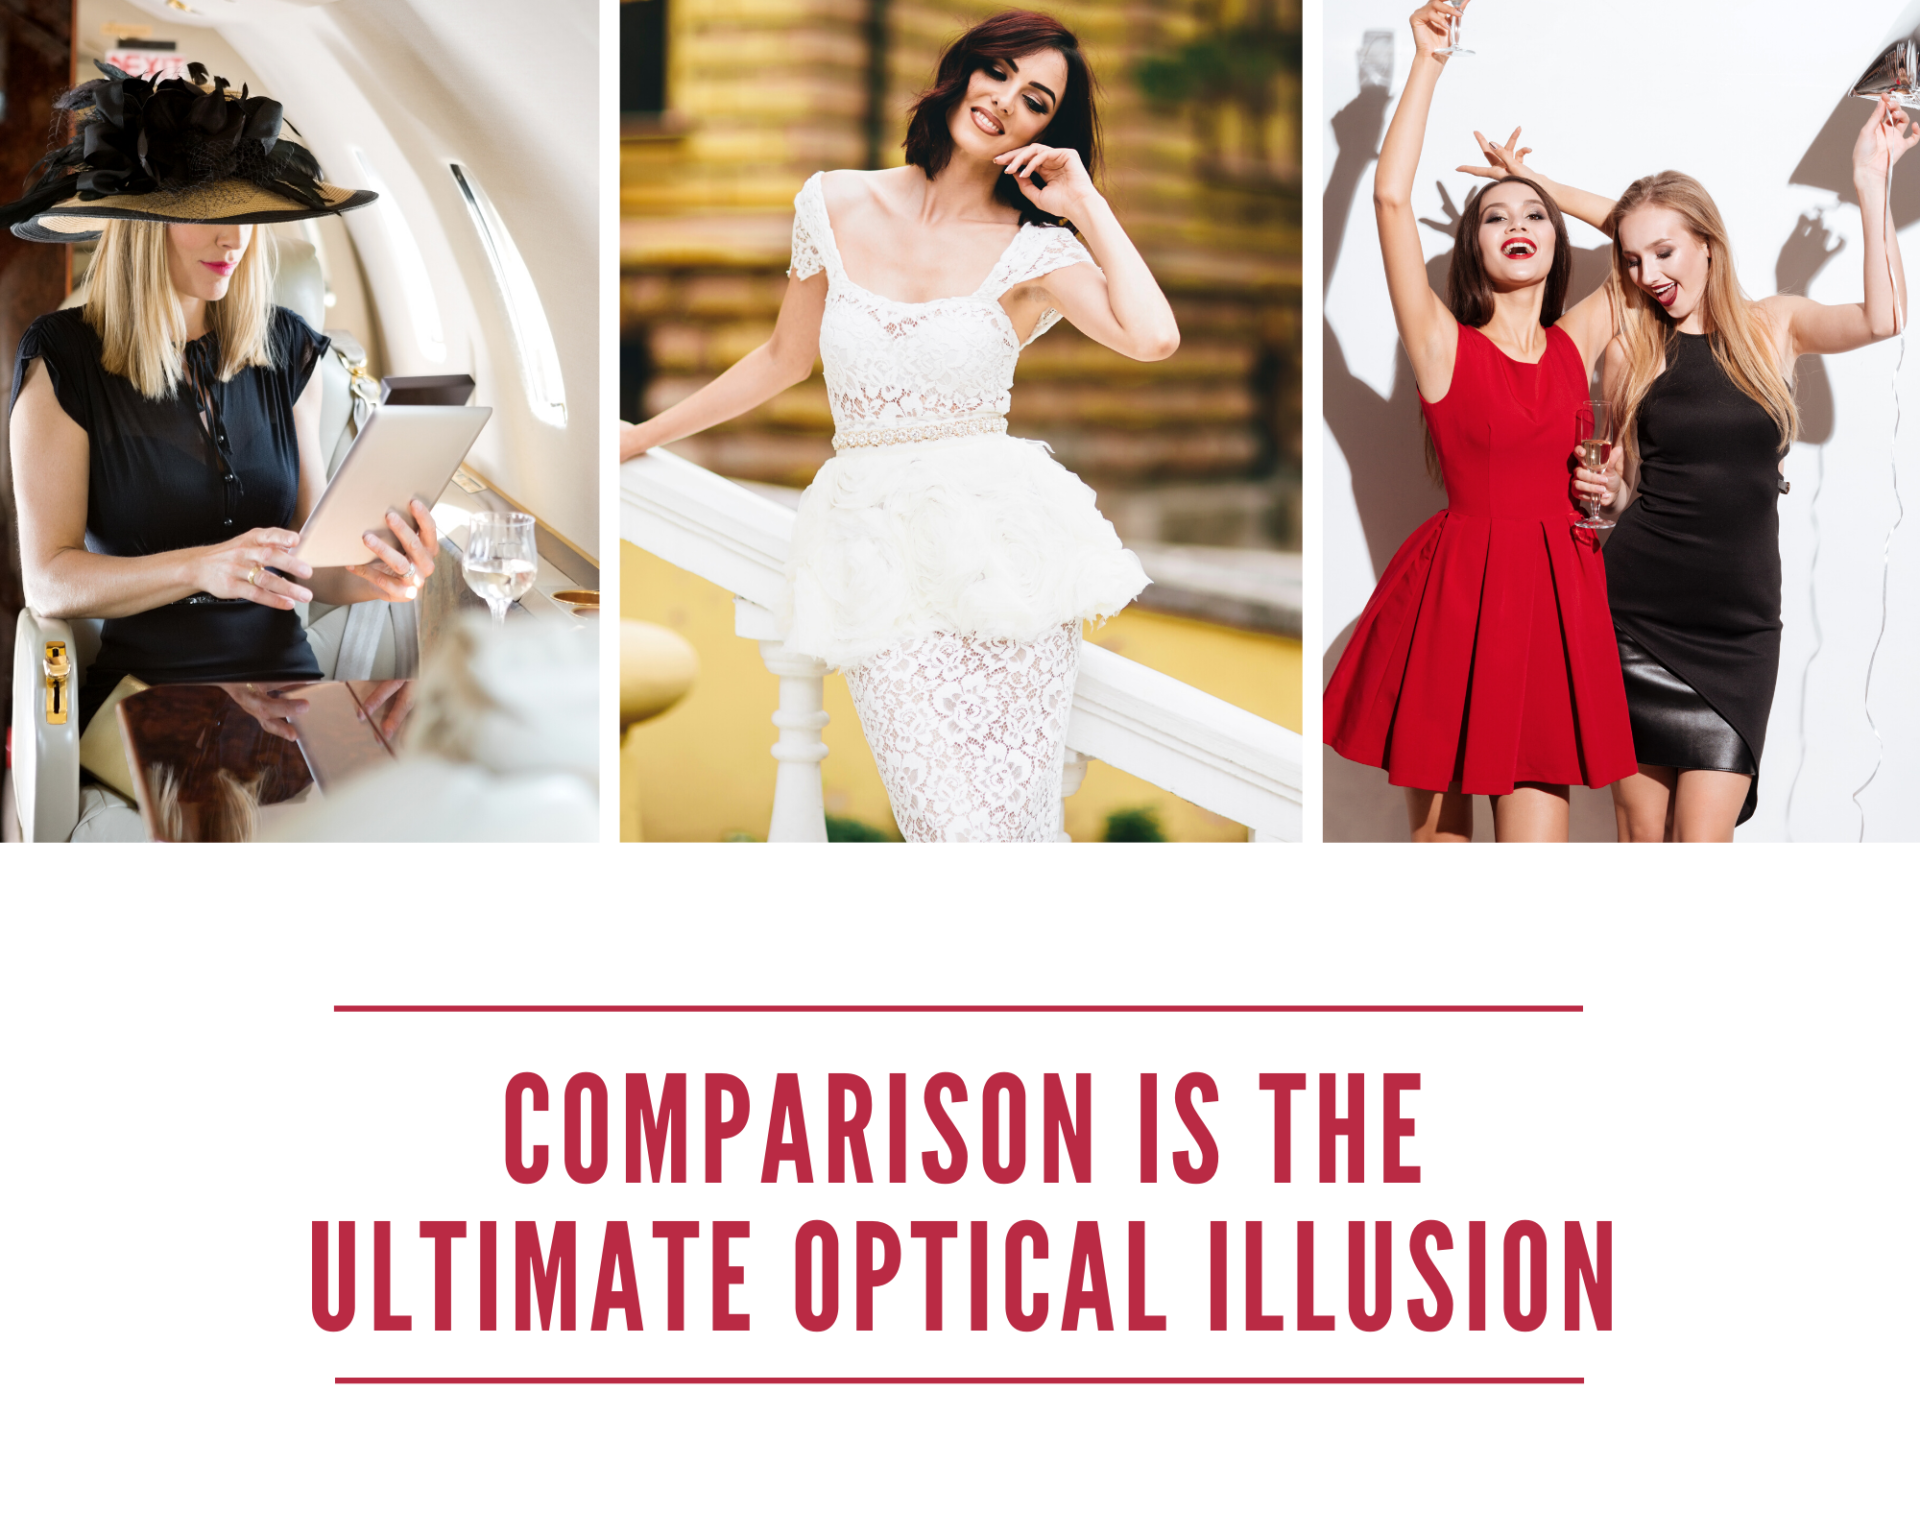 comparison is an optical illusion